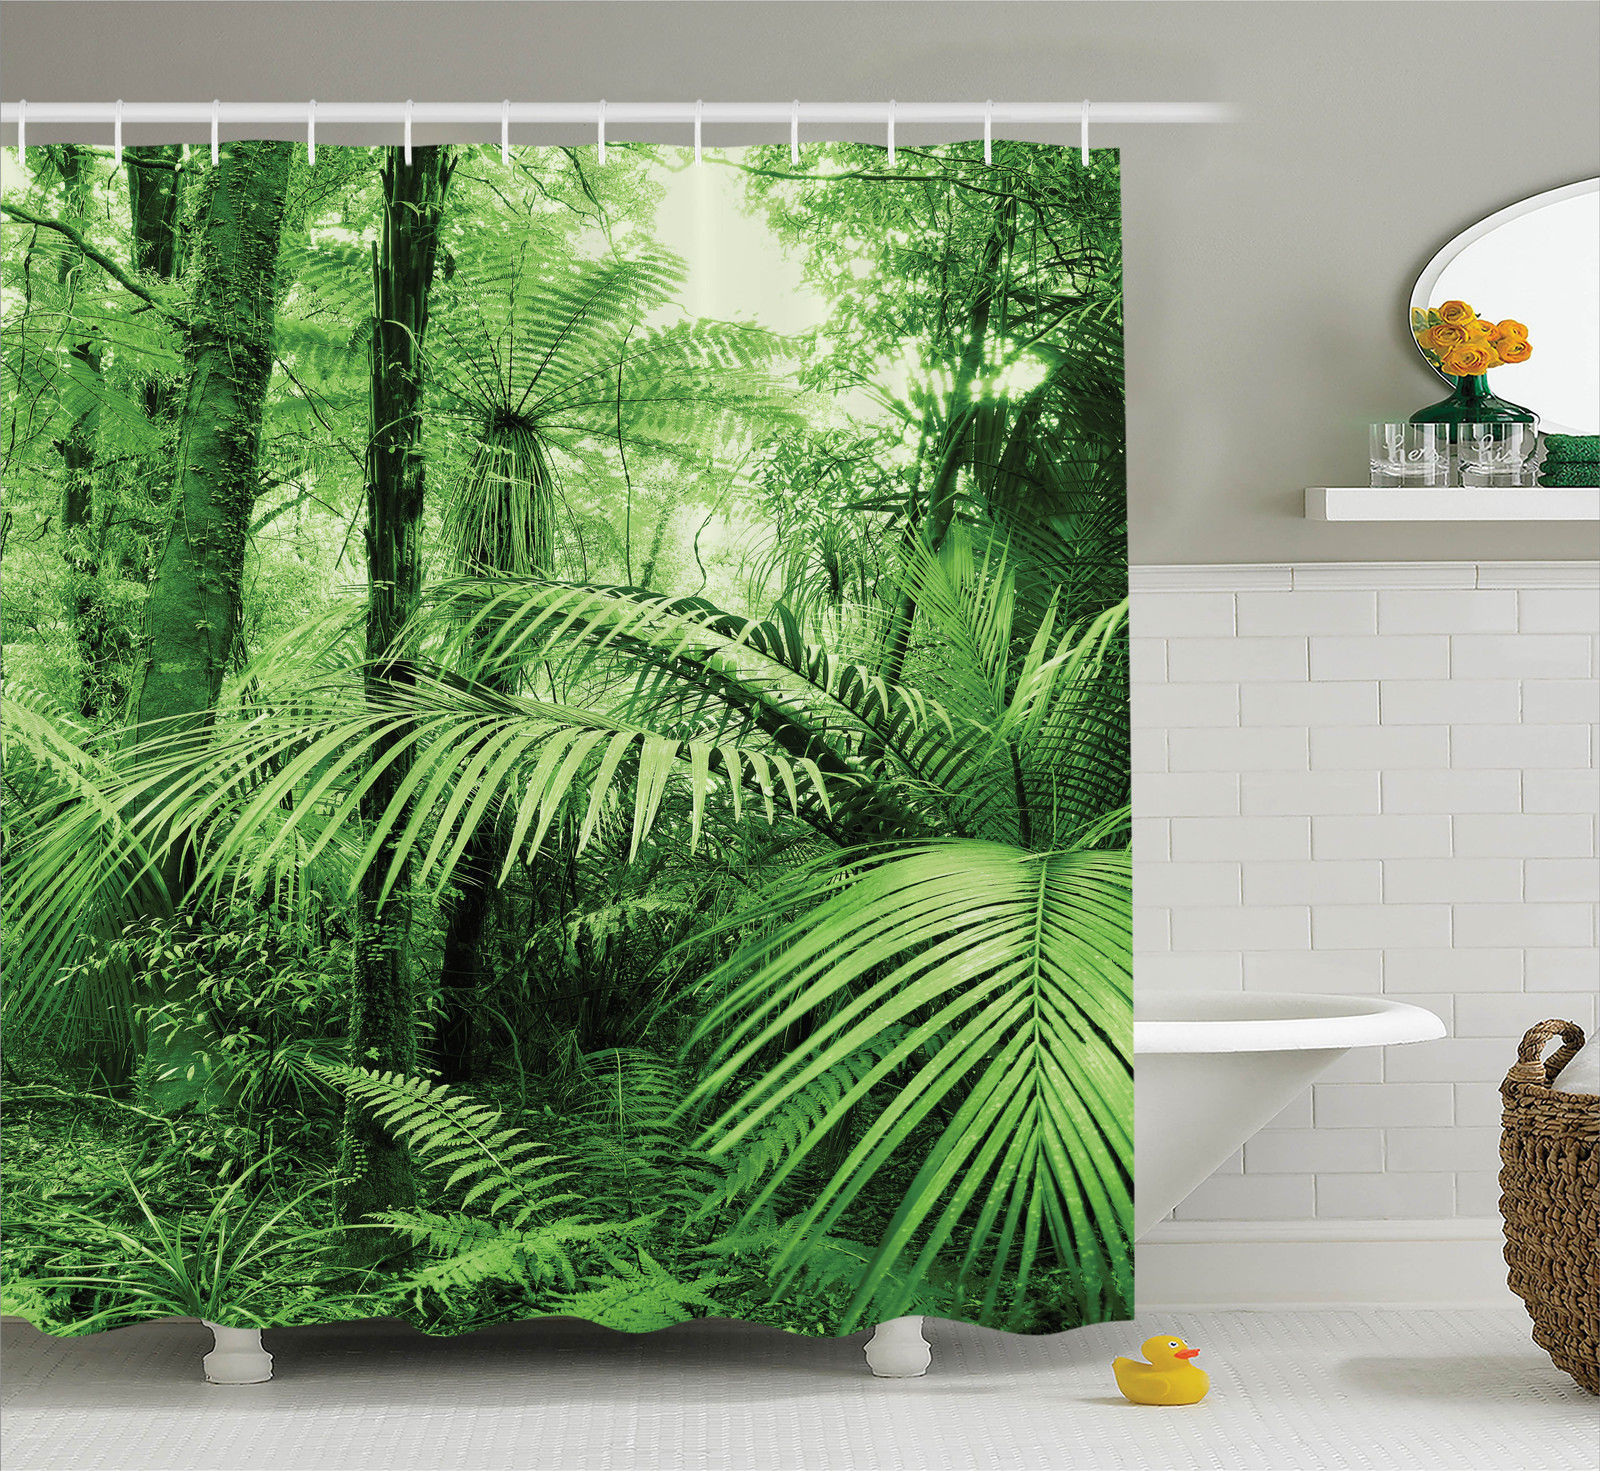 Rainforest Decorations Shower Curtain Set, Palm Trees And Exotic Plants In  Tropical Jungle Wild Nature